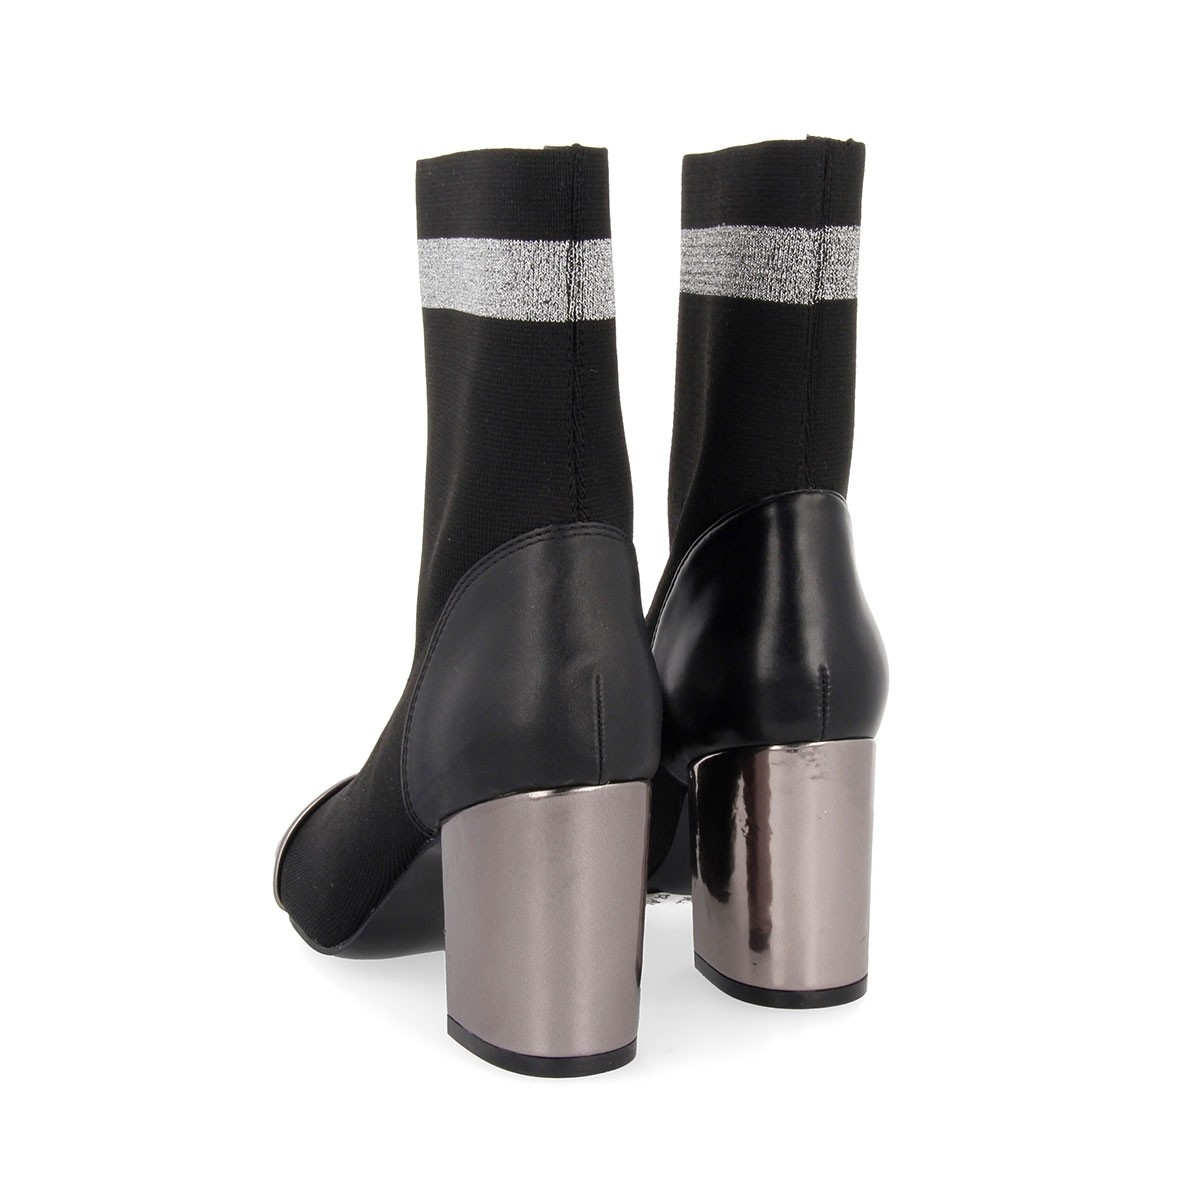 46423 Black-Silver BOOTS 5